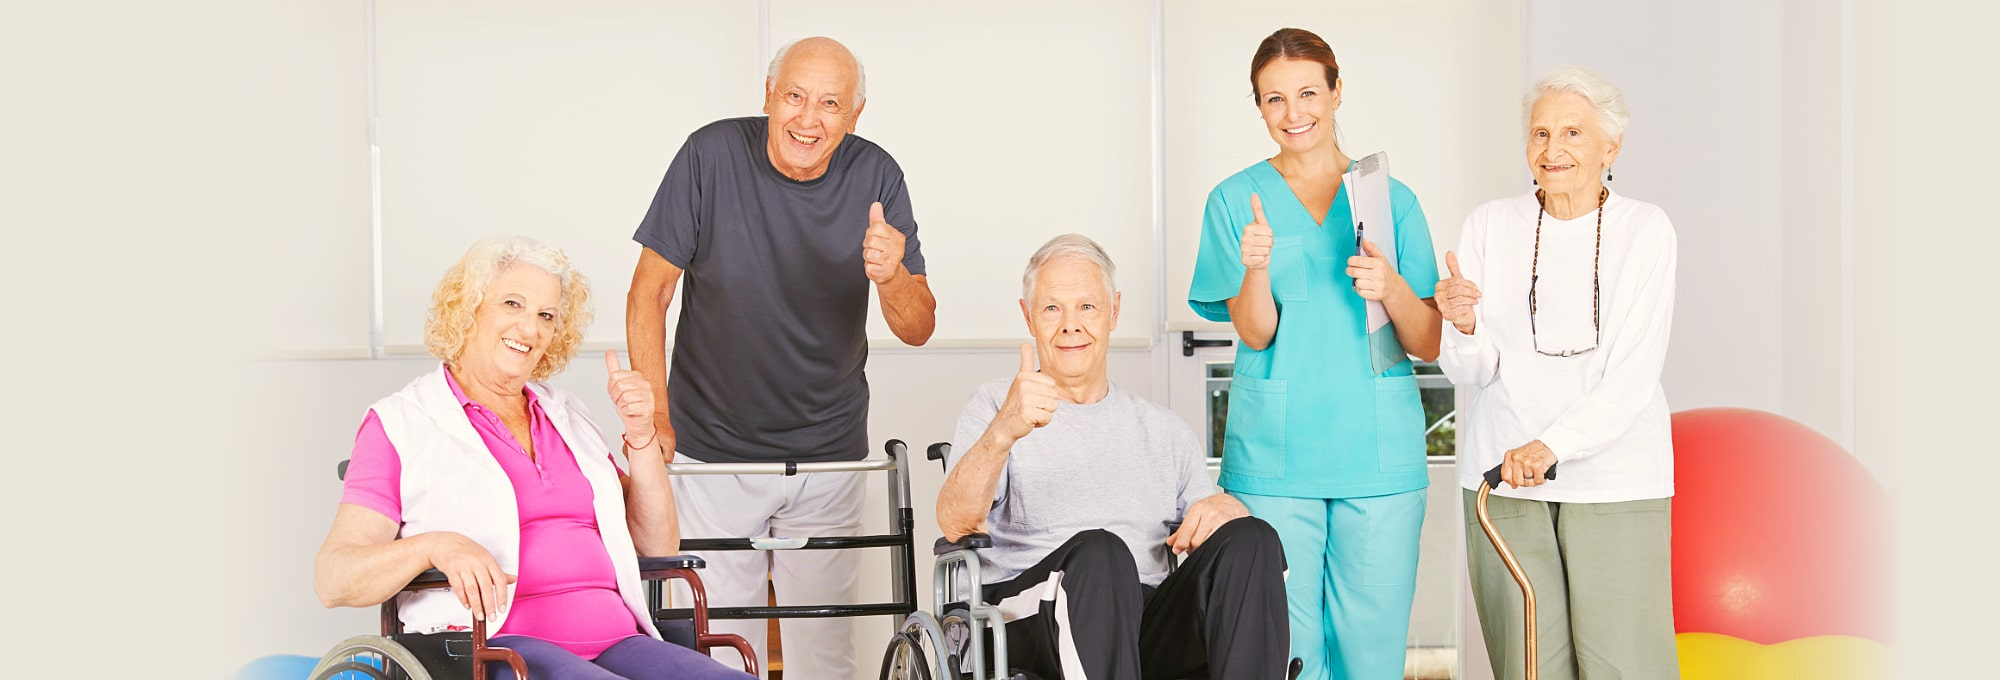 group of elderly people showing their thumbs up